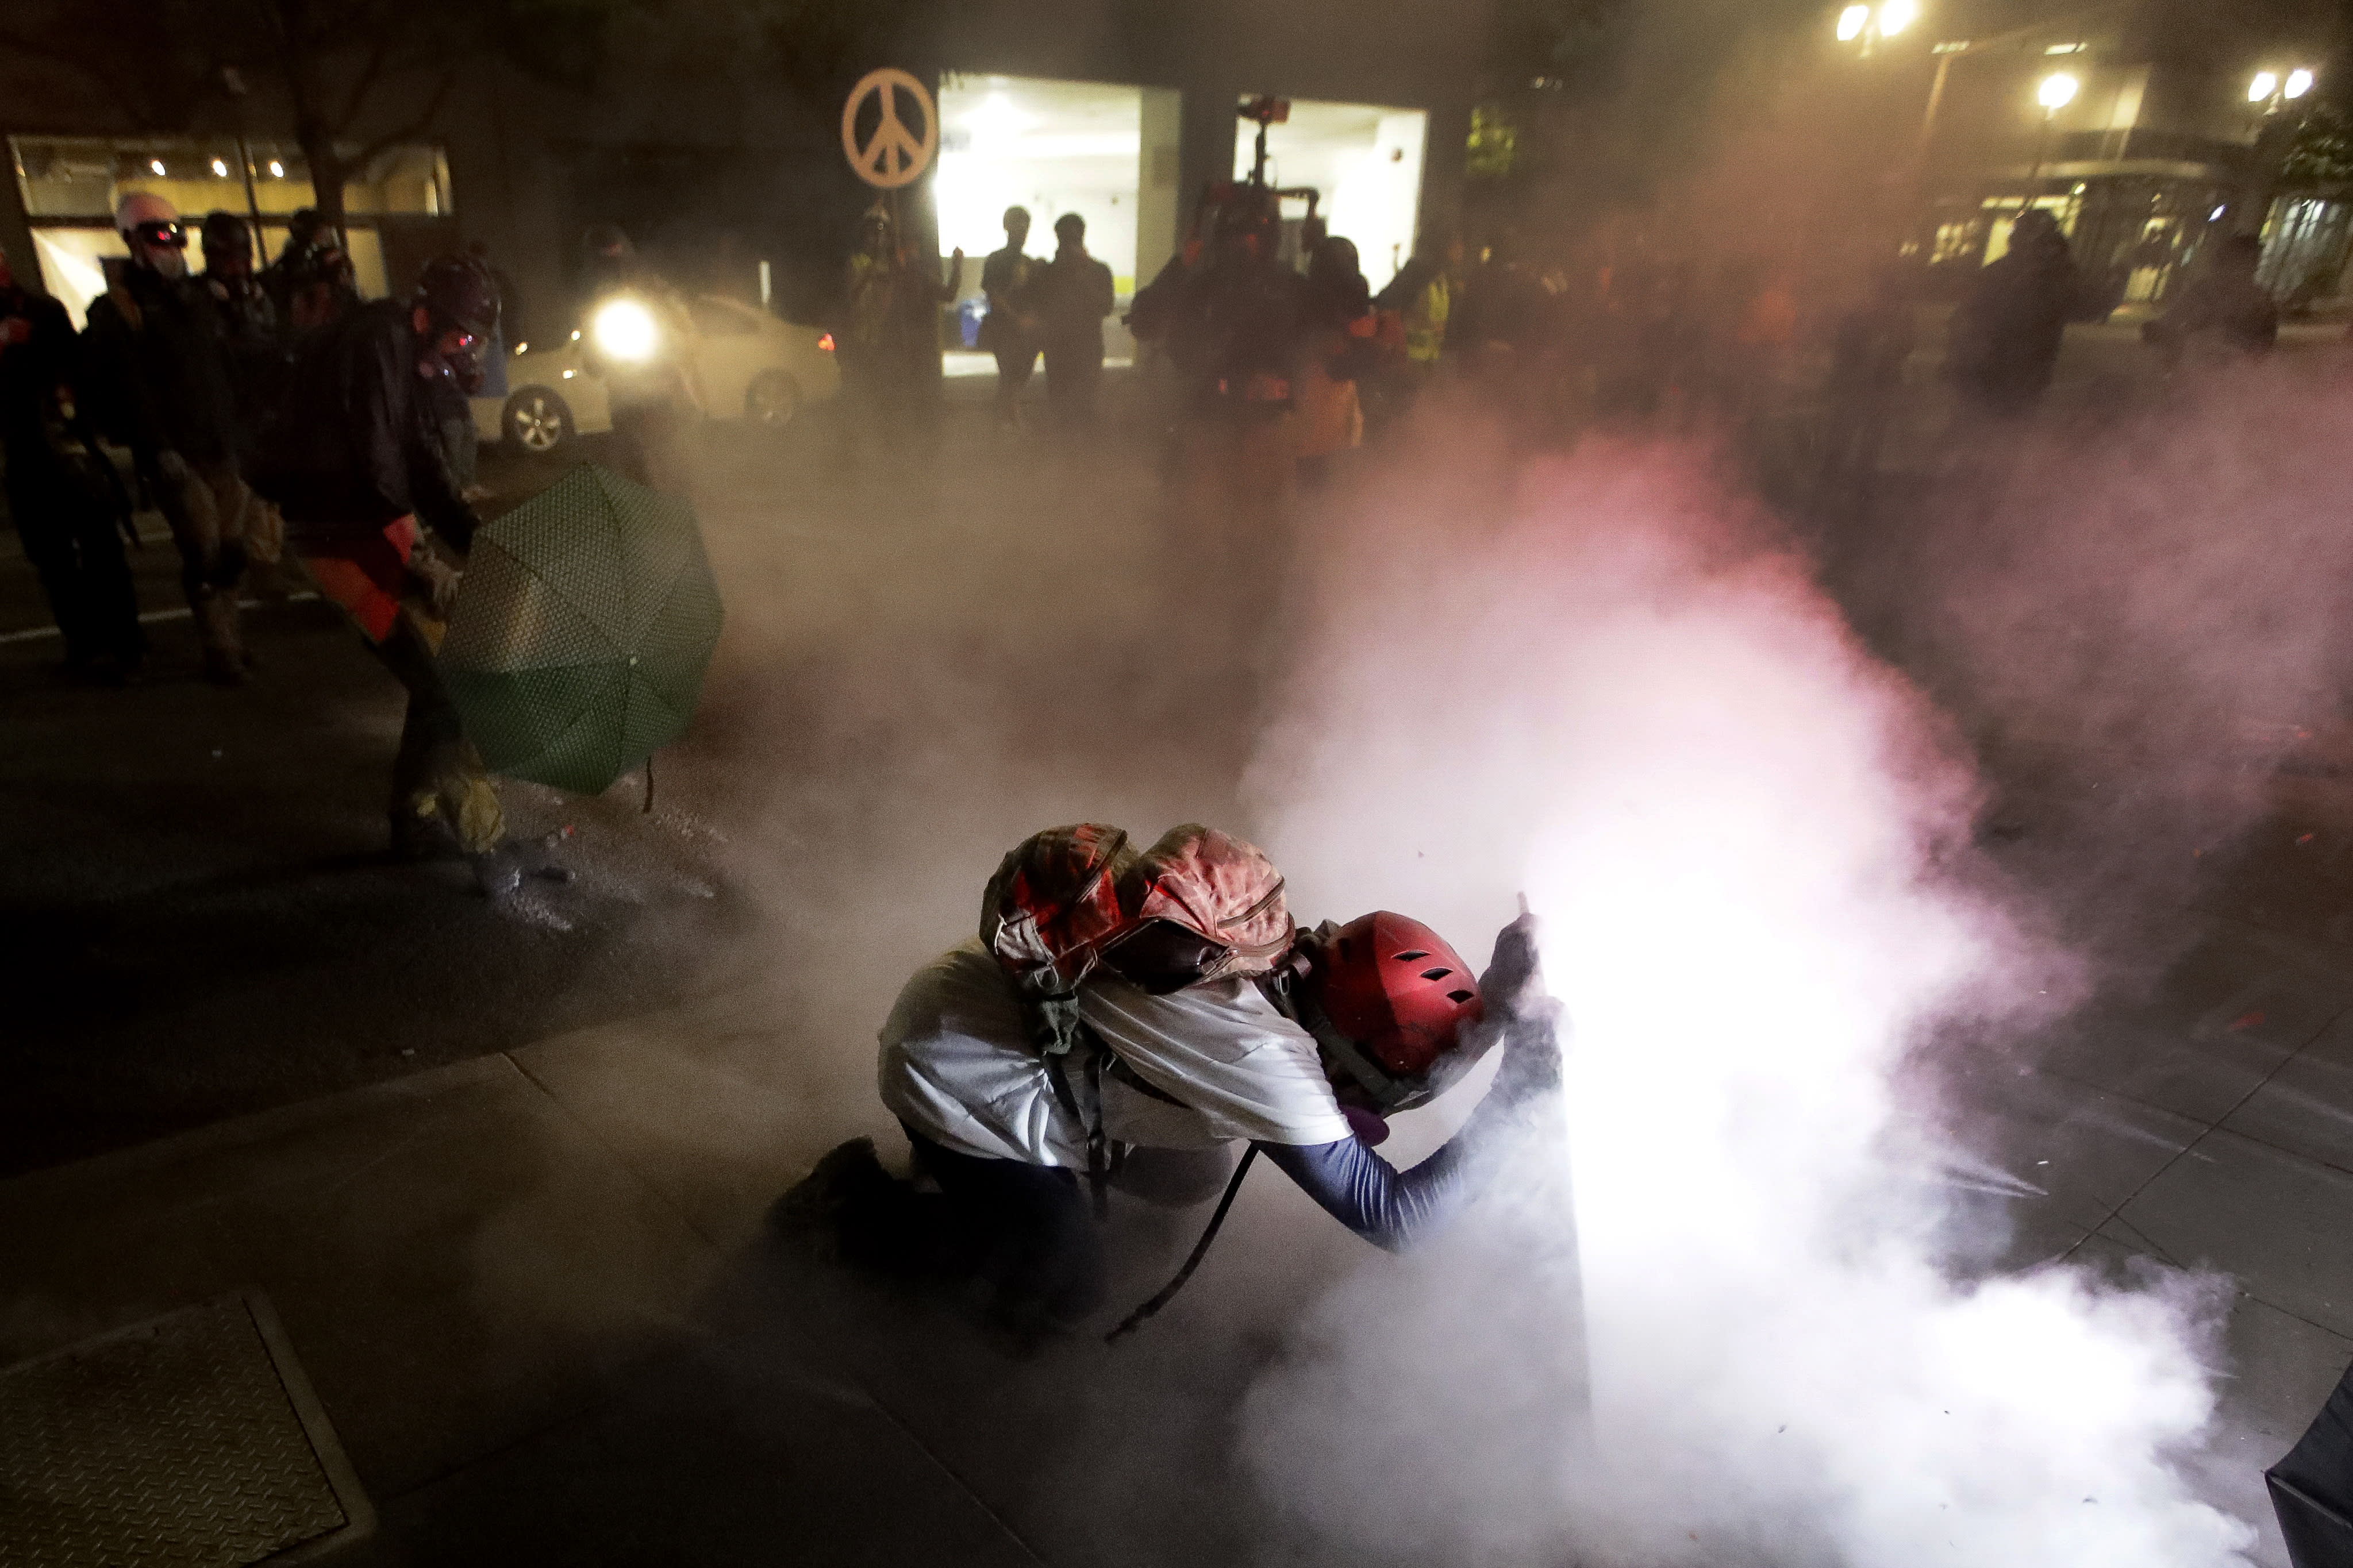 A demonstrator kneels and uses a makeshift shield as federal agents launch tear gas during a Black Lives Matter protest at the Mark O. Hatfield United States Courthouse Wednesday, July 29, 2020, in Portland, Ore. (AP Photo/Marcio Jose Sanchez)